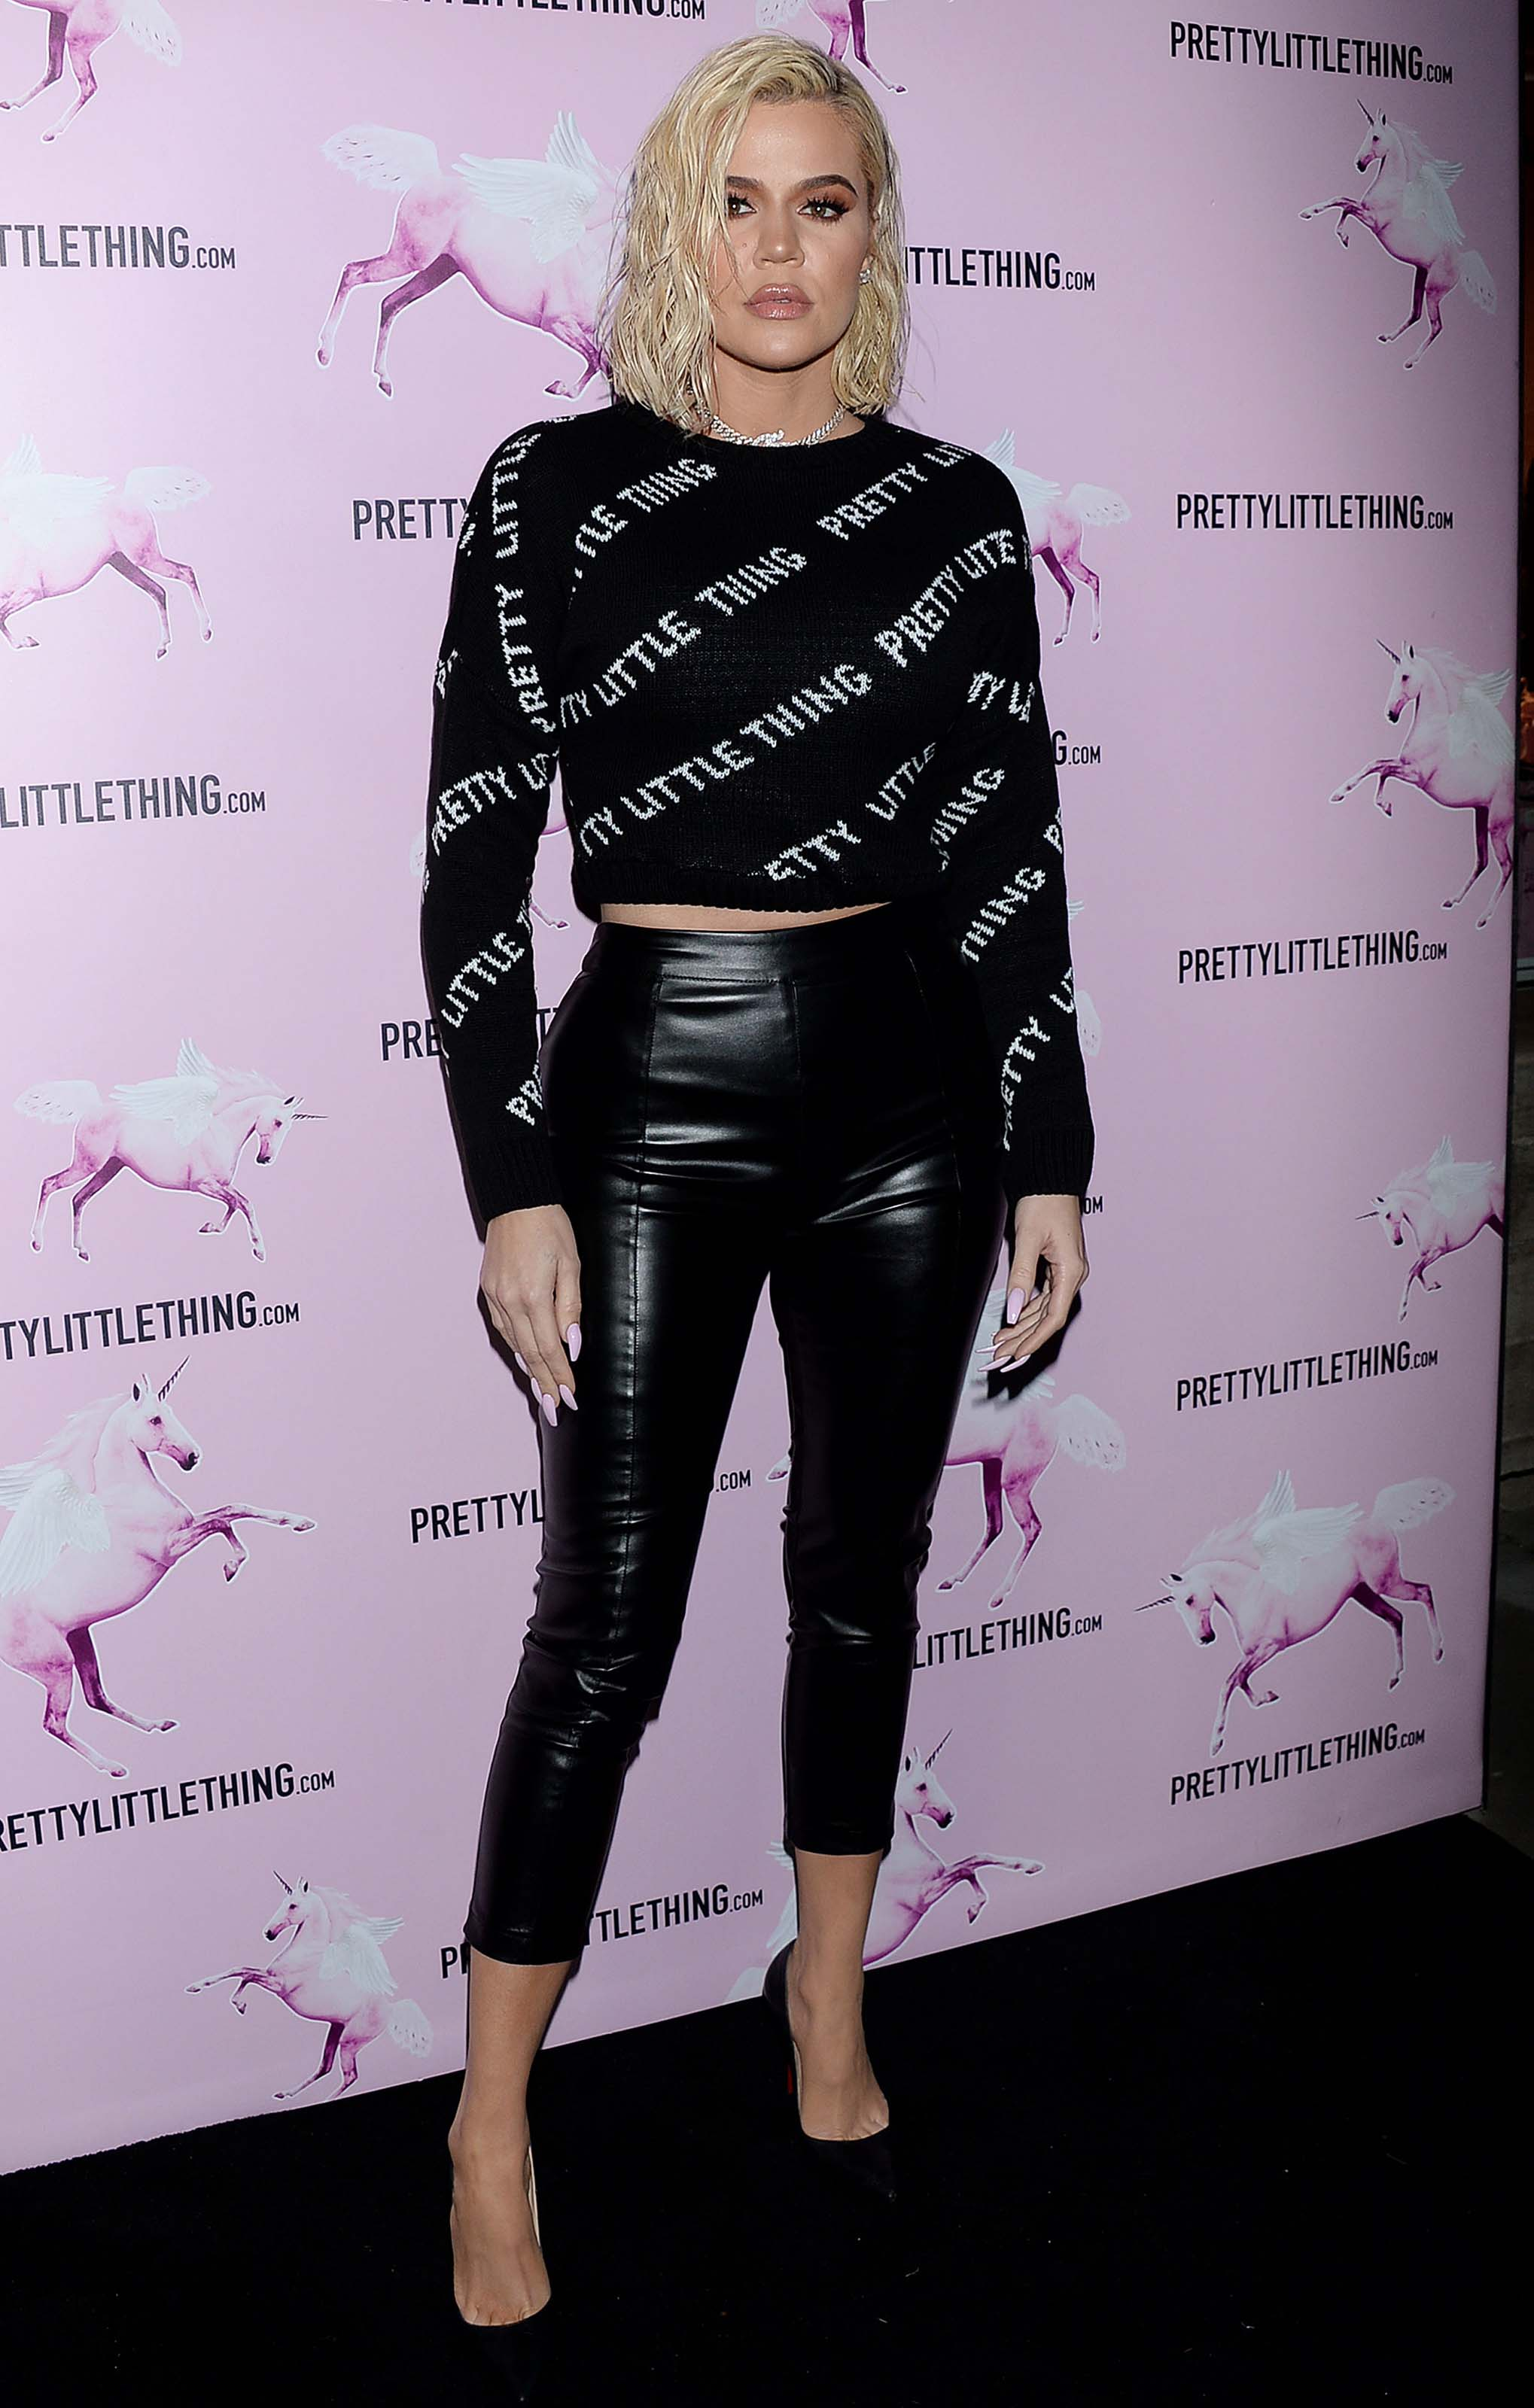 Khloe Kardashian attends PrettyLittleThing LA Office Opening Party